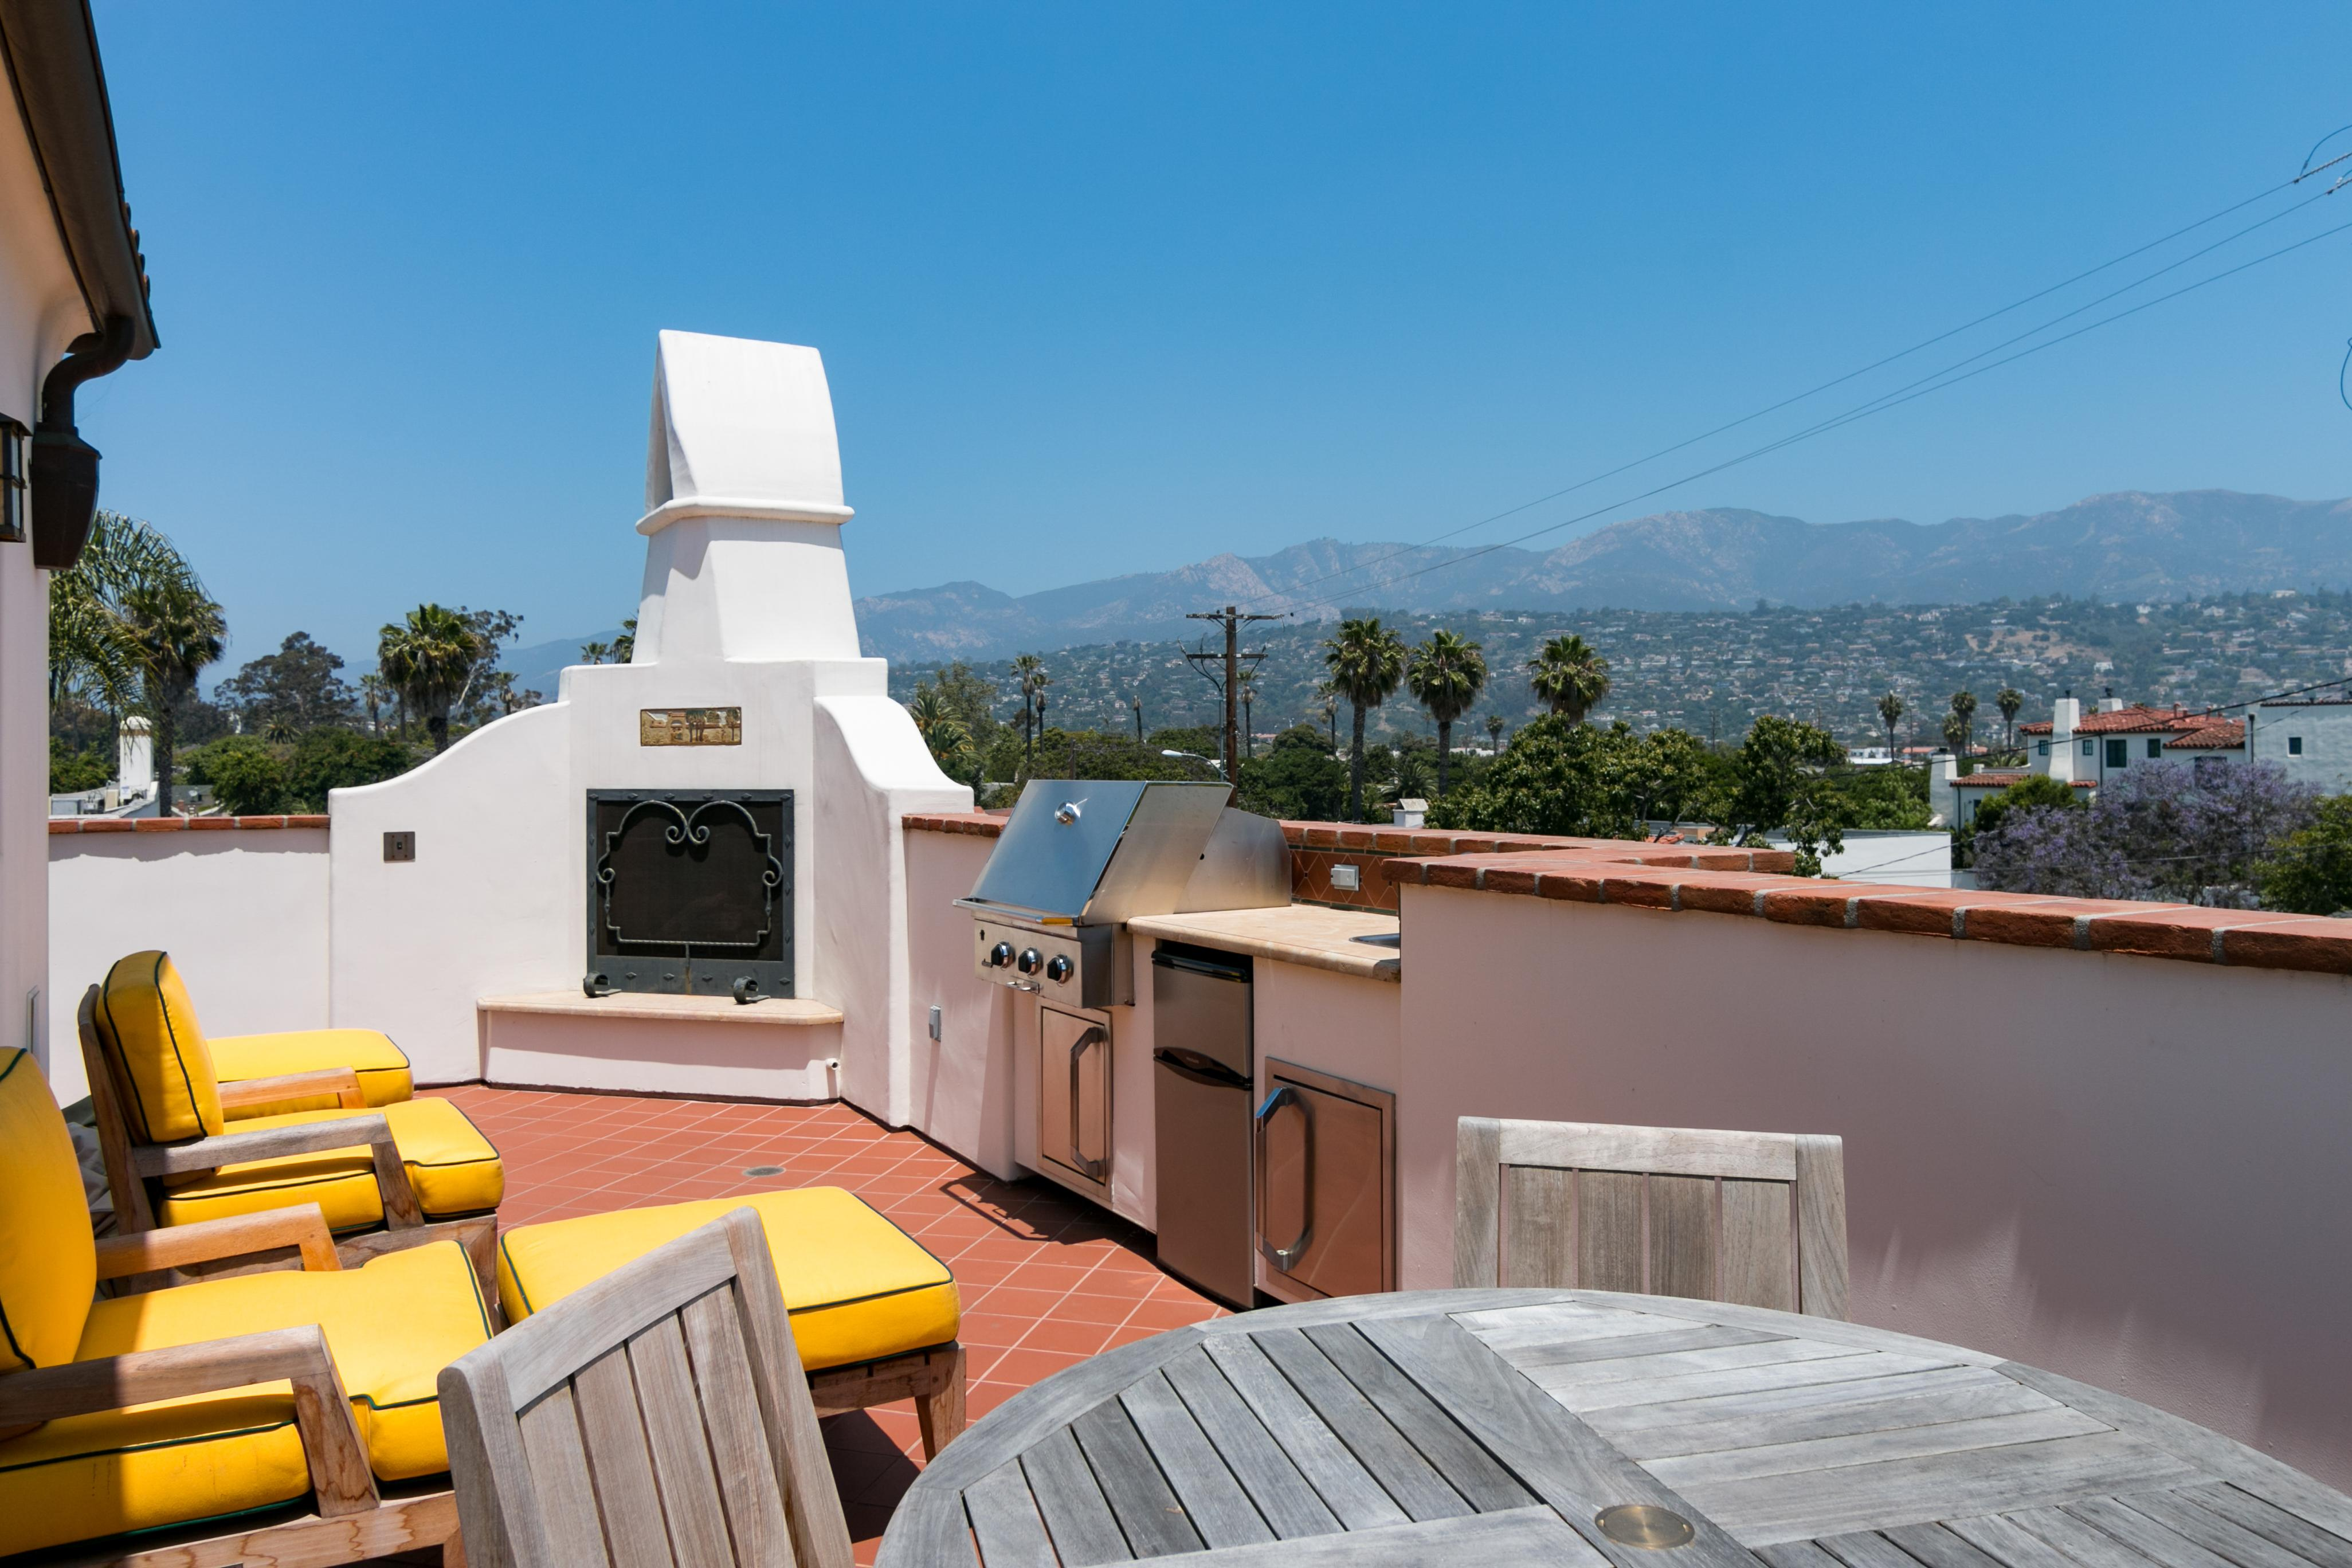 Fire up the grill on the upper floor balcony and enjoy an alfresco feast.